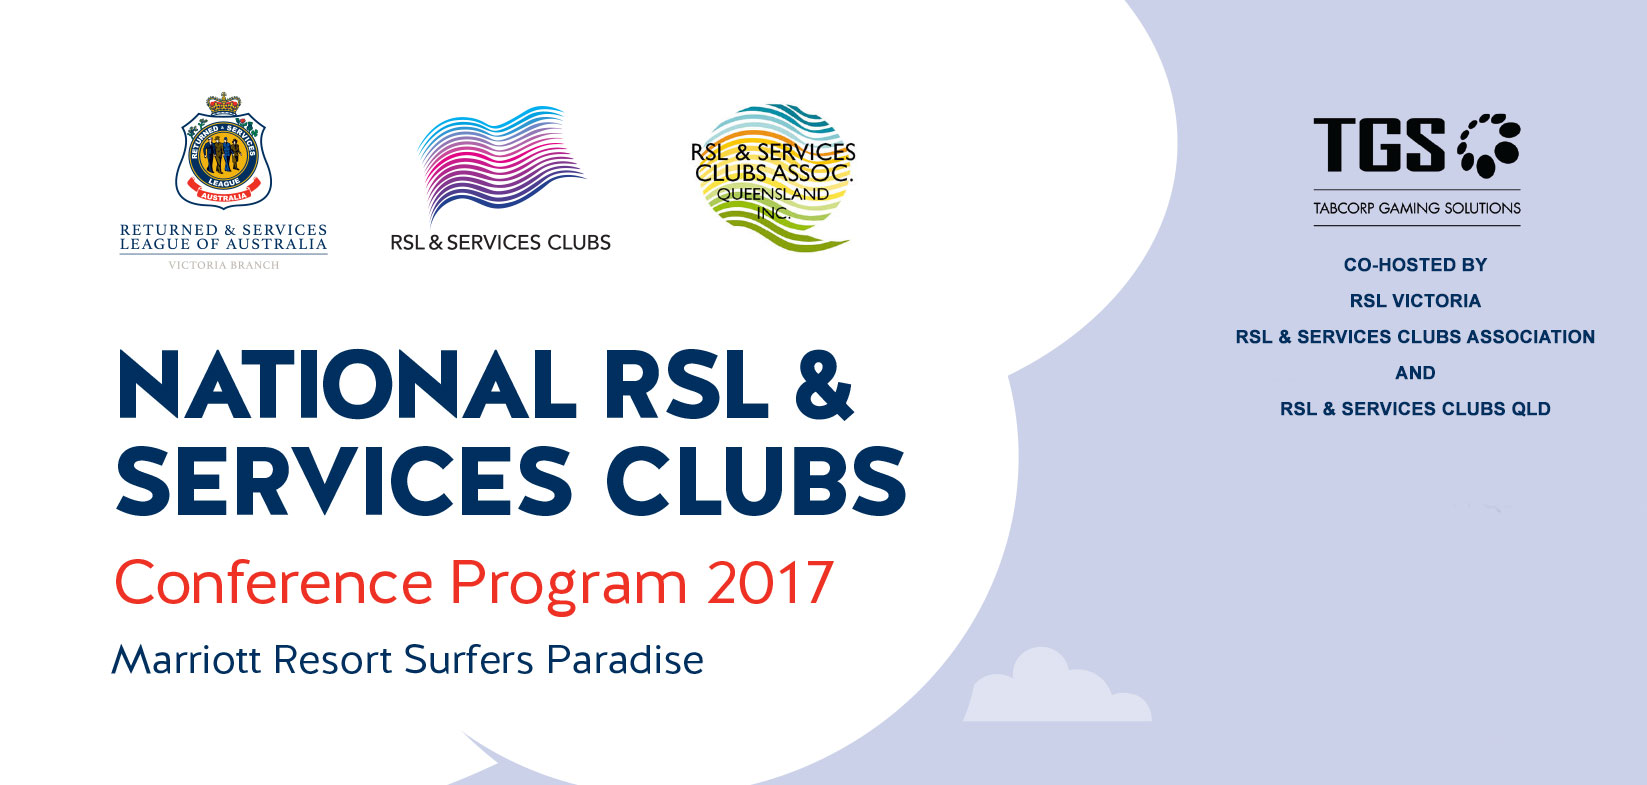 National RSL & Services Clubs Conference 2017